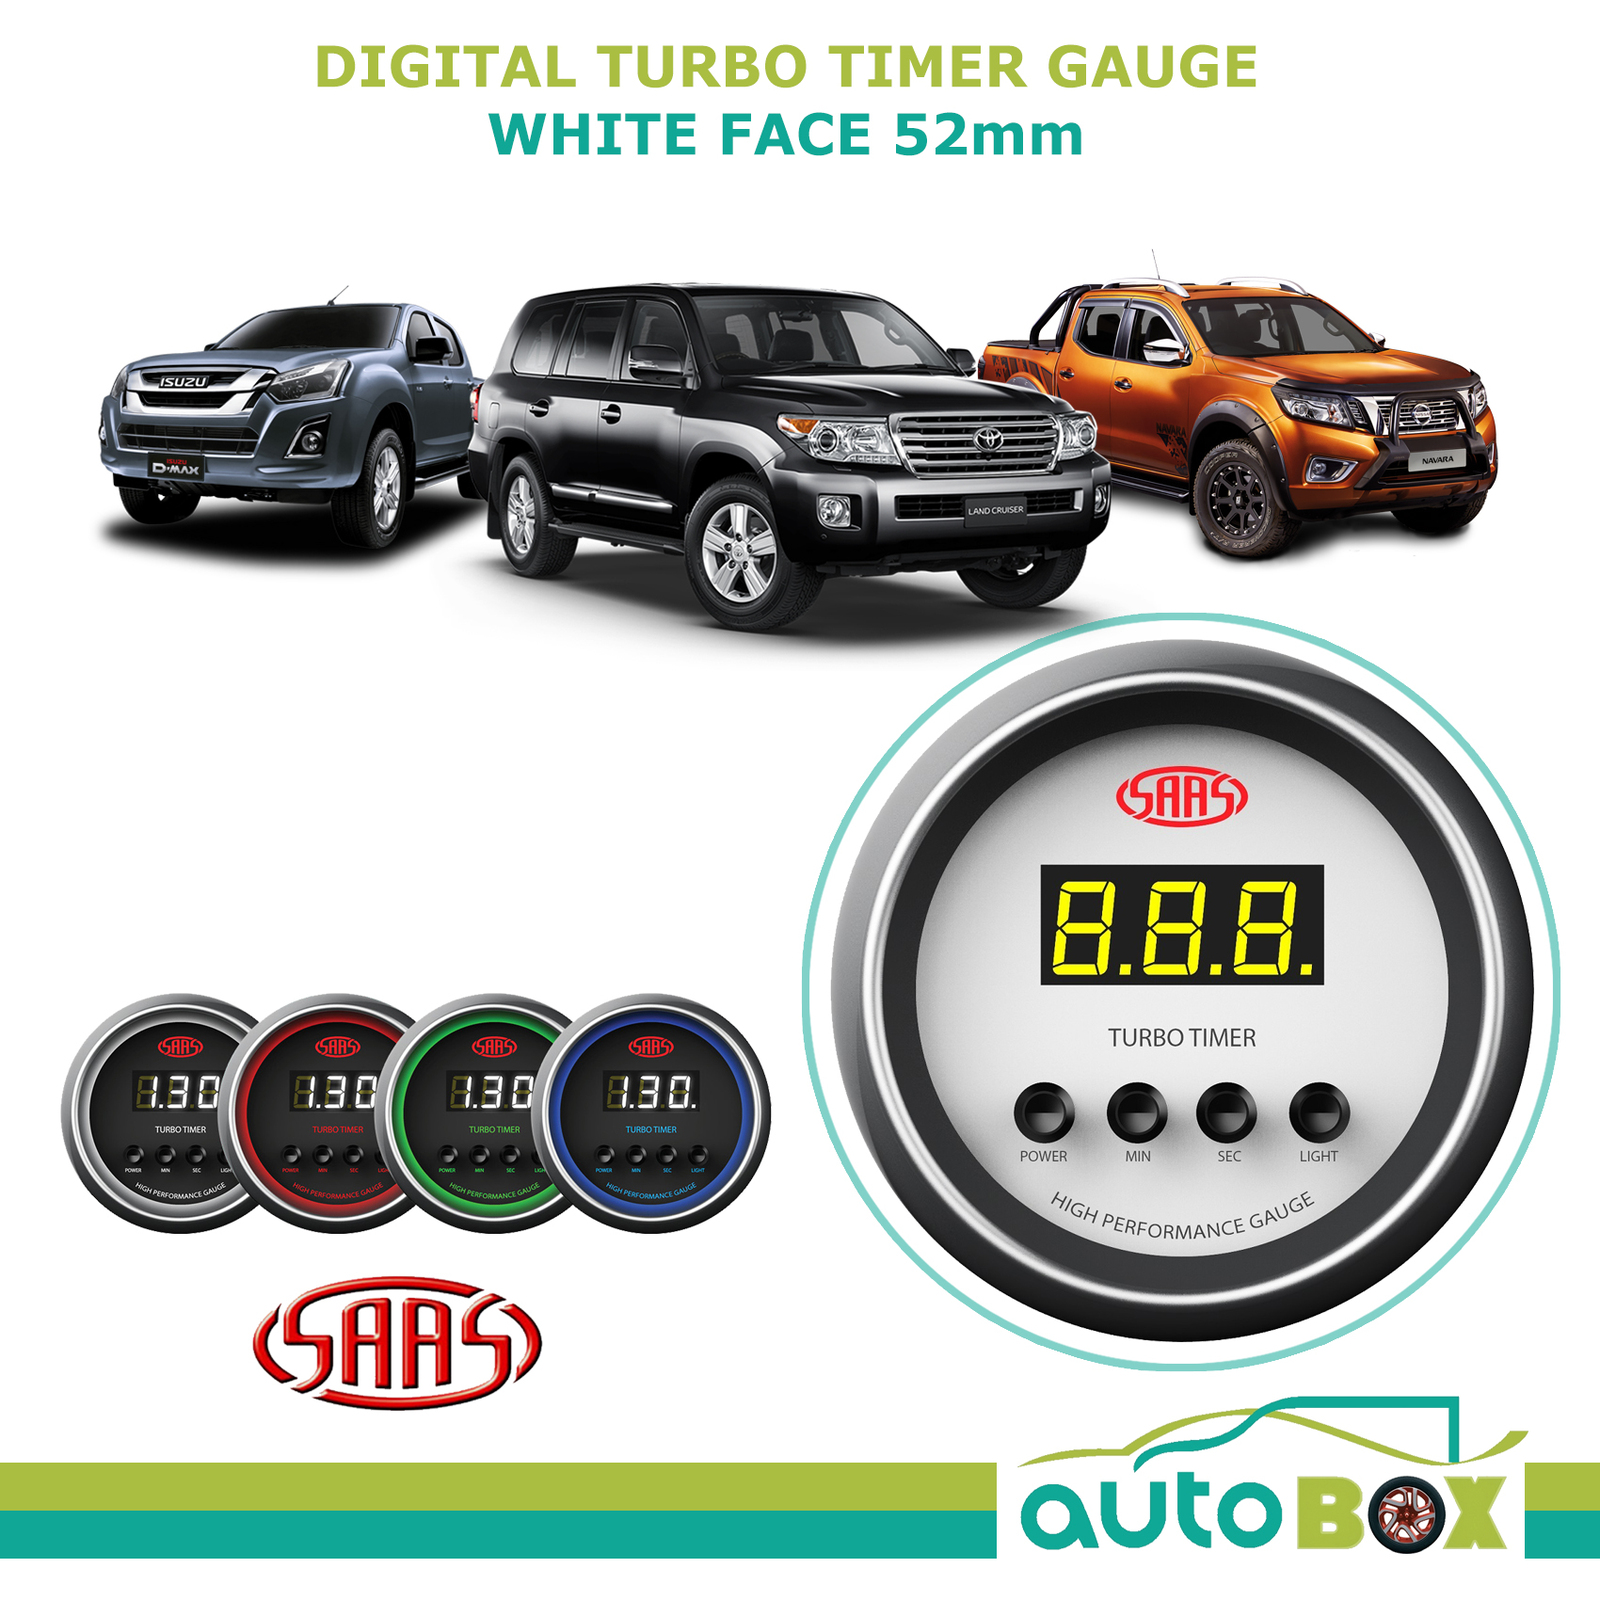 SAAS DIGITAL TURBO TIMER 52MM GAUGE WHITE FACE 4 COLOUR - Performance WRX  4WD